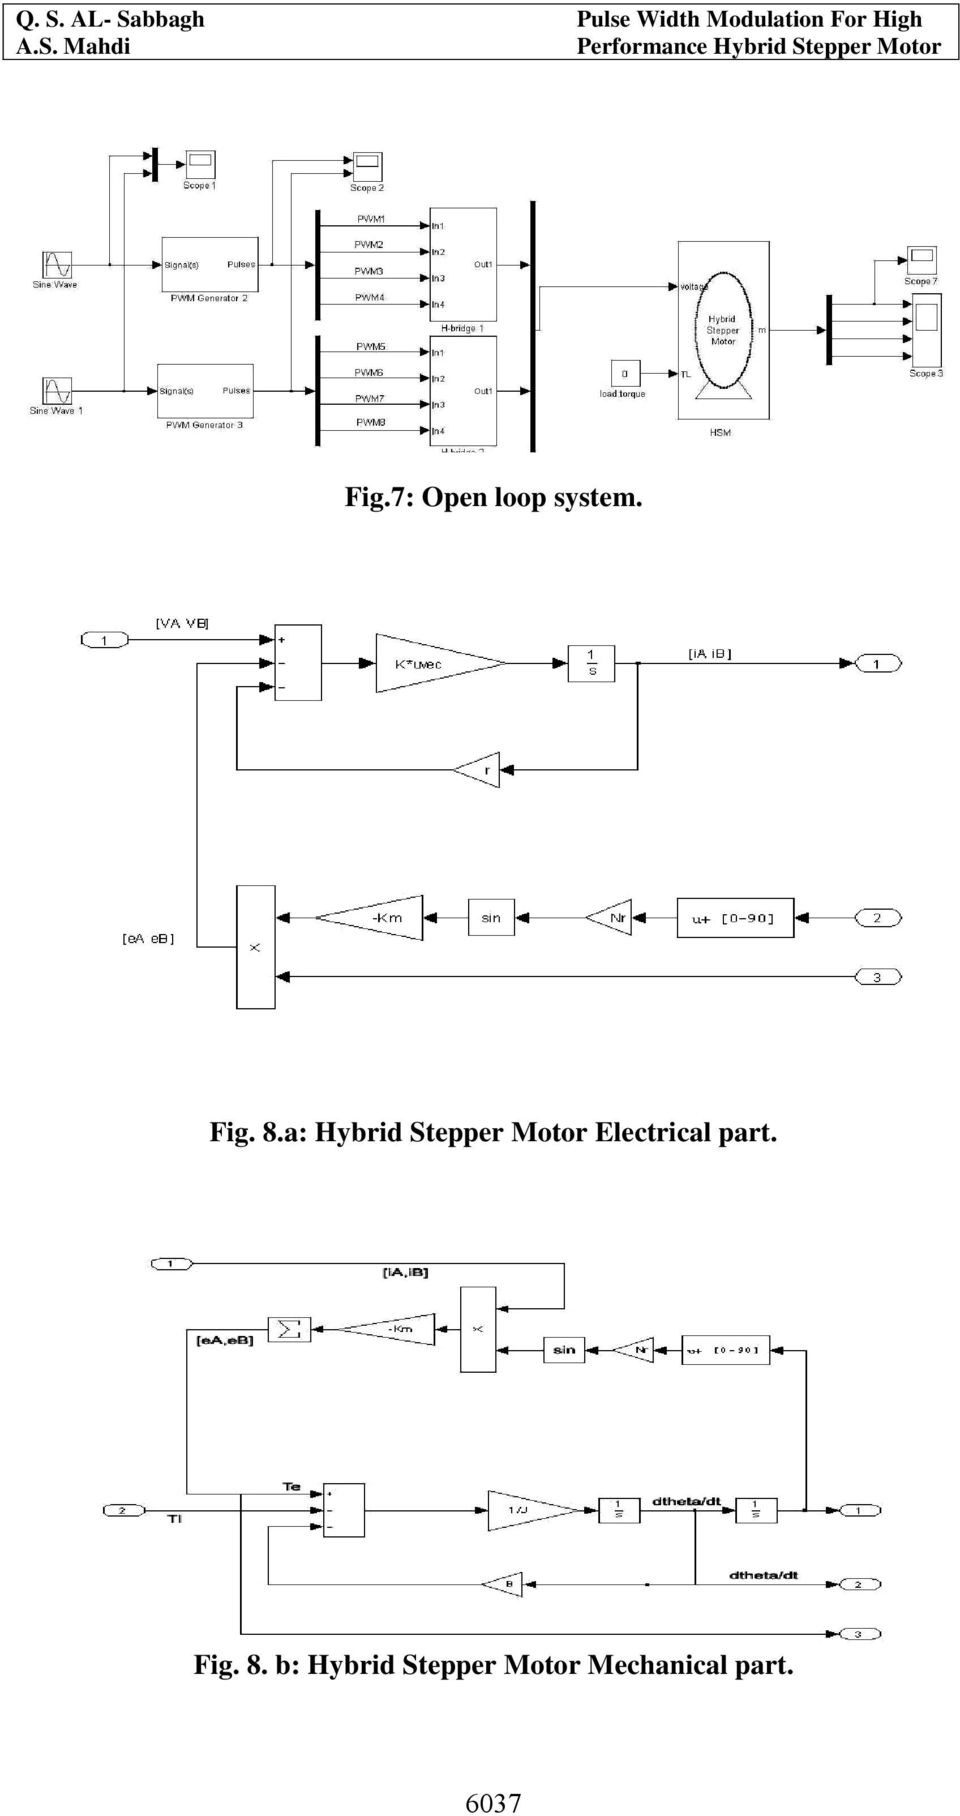 Pulse Width Modulation For High Performance Hybrid Stepper Motor Pdf Generator Circuit A Electrical Part Fig 8